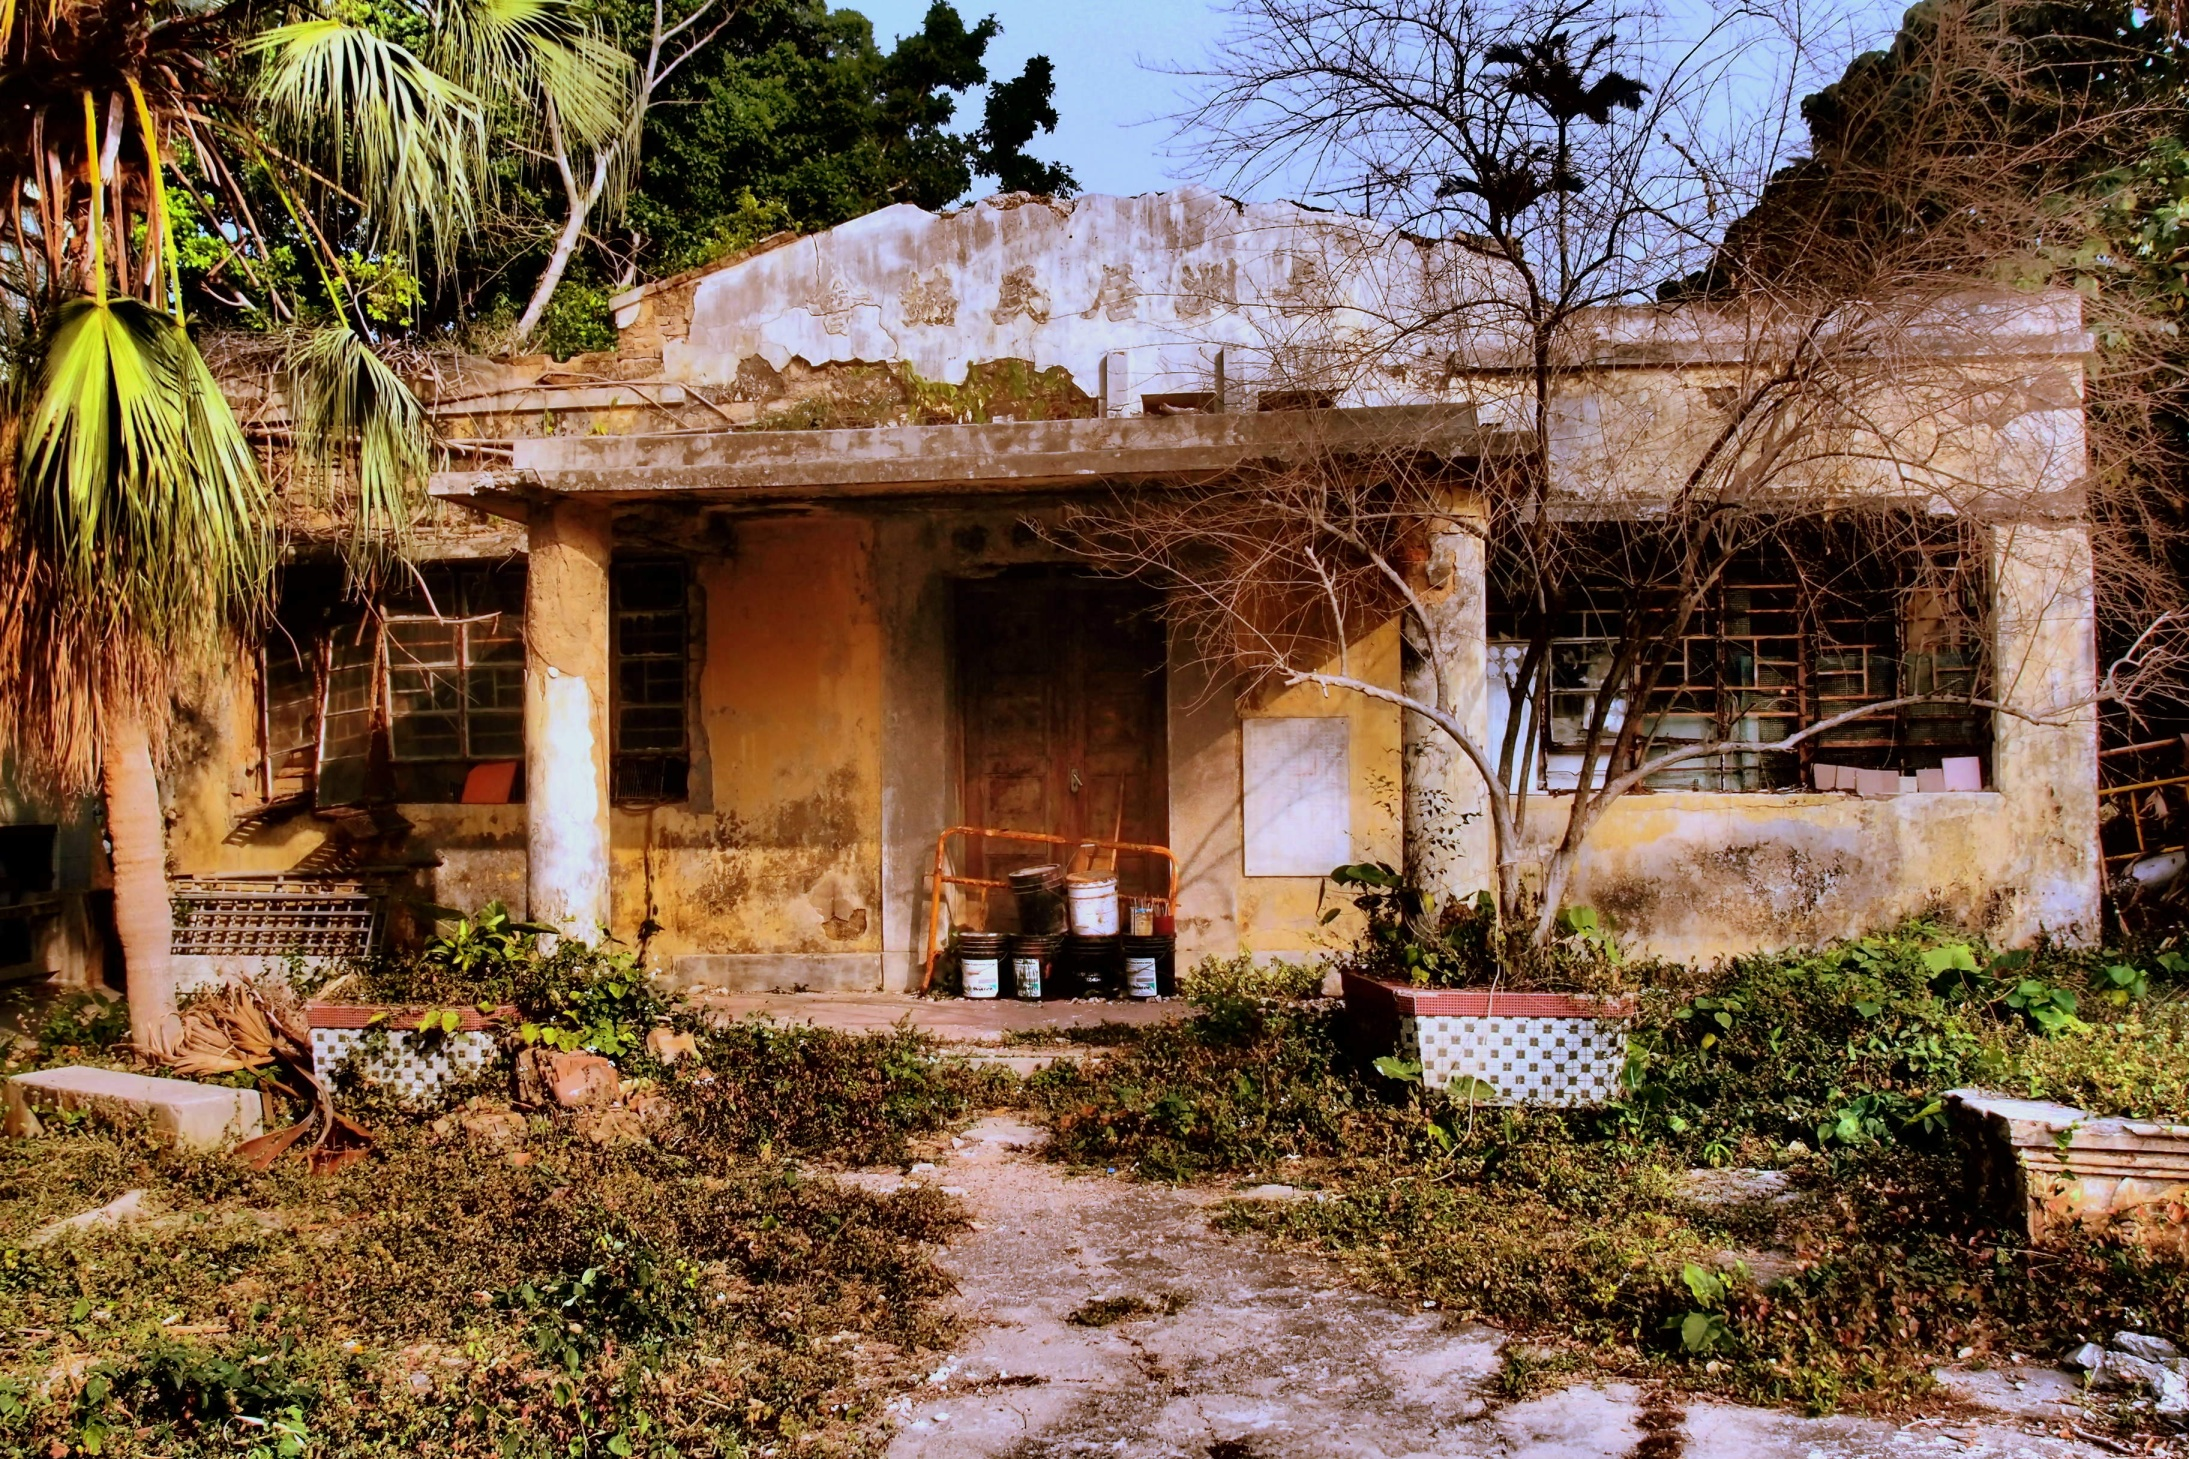 A grungy old building on Cheung Chau Island